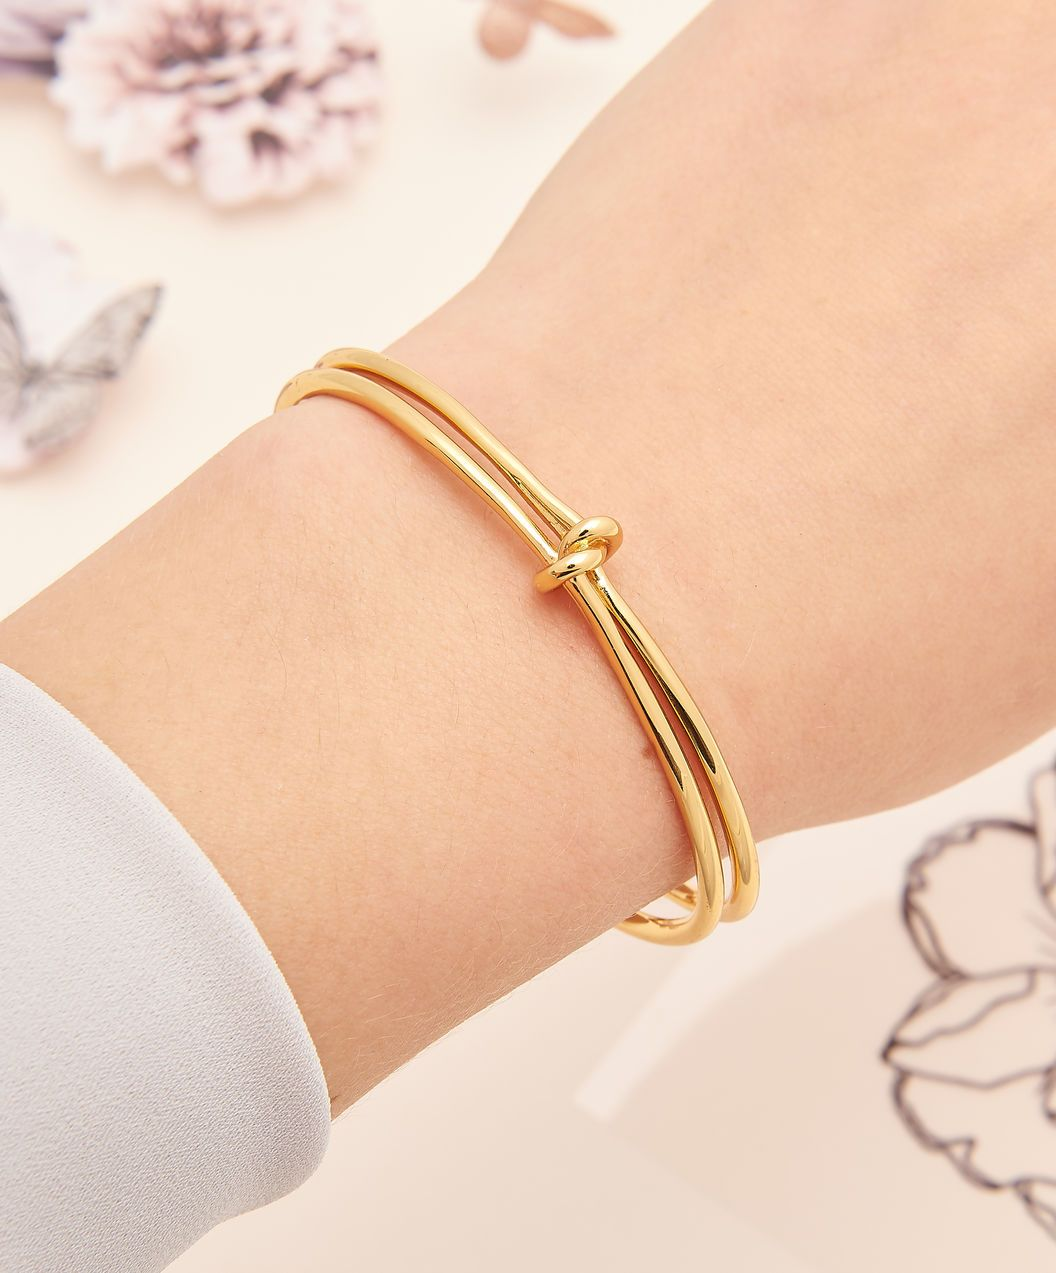 Forget Me Knot Cuff Bracelet Gold